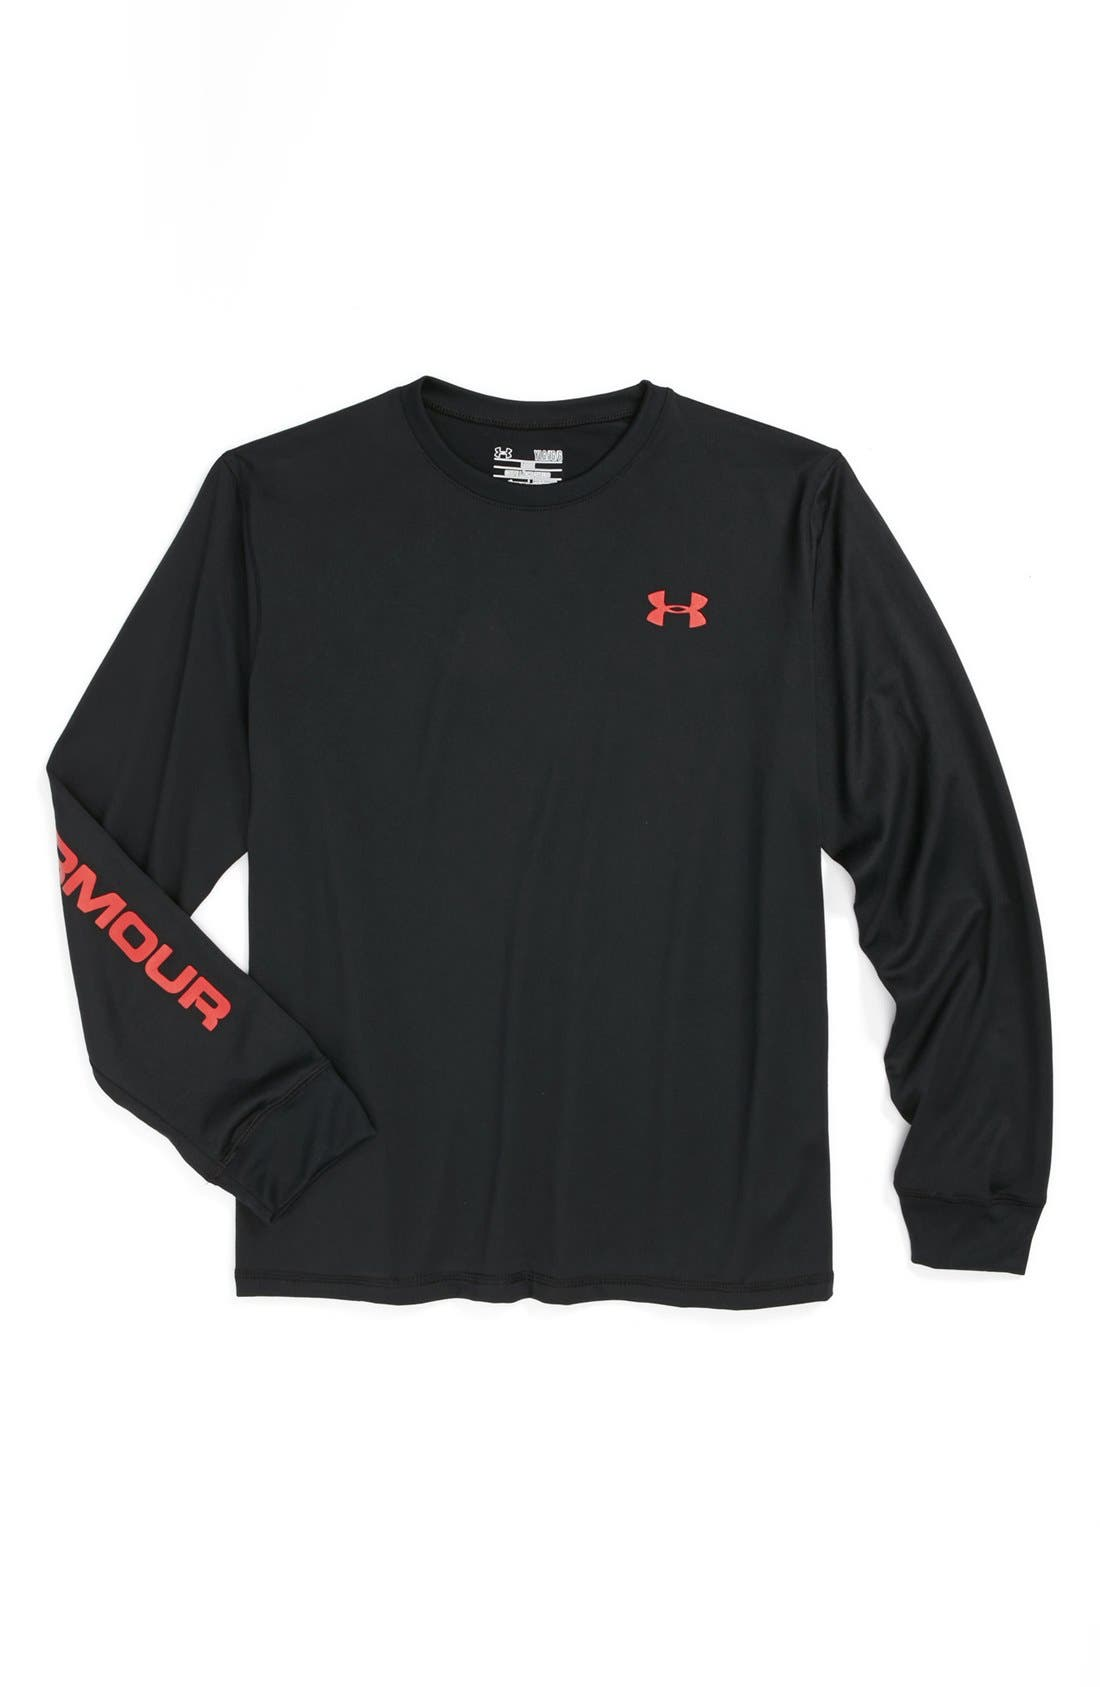 Alternate Image 1 Selected - Under Armour 'Cray' HeatGear® T-Shirt (Big Boys)